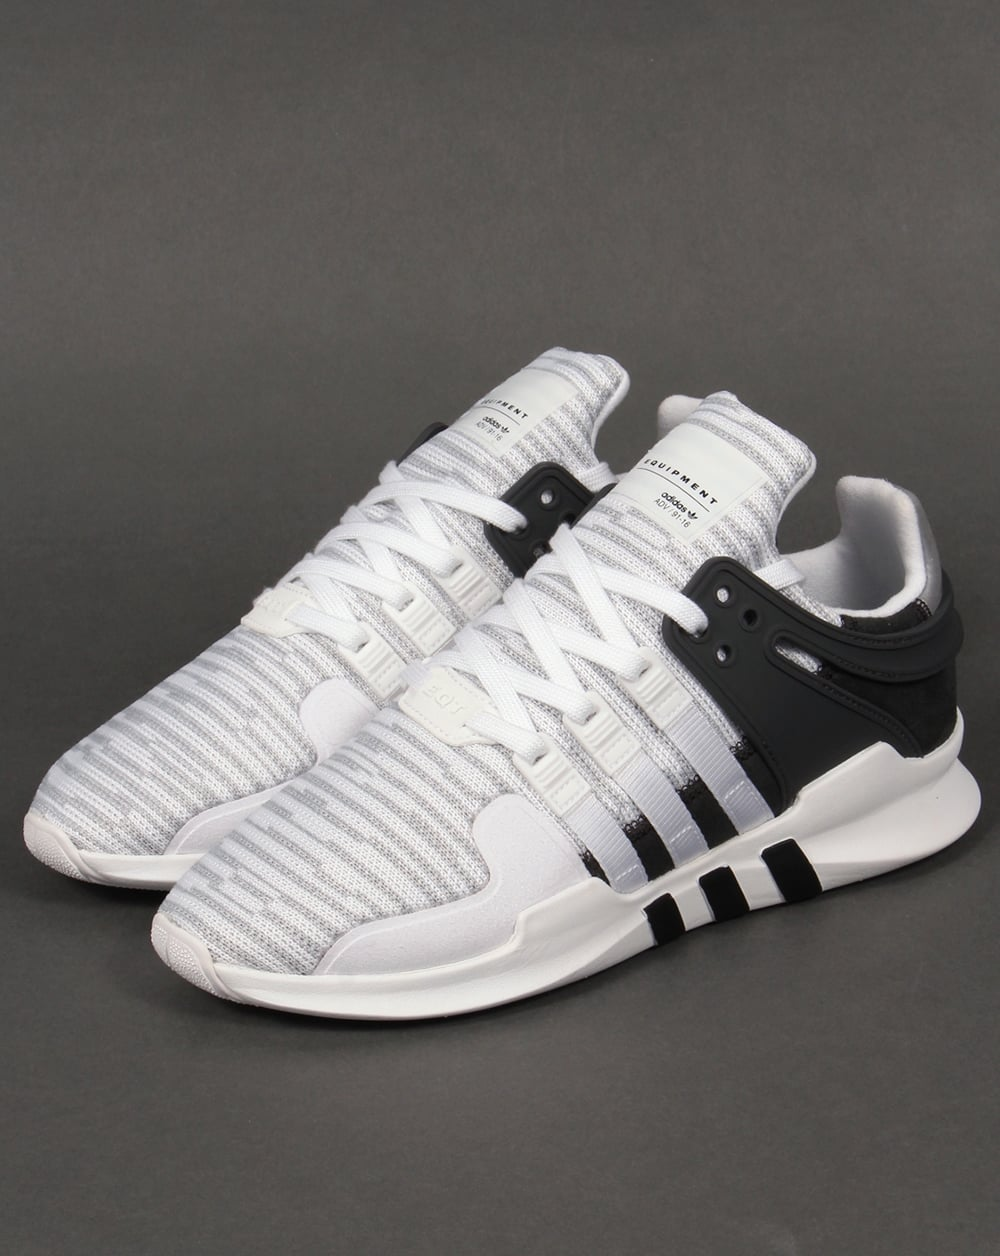 adidas eqt running support adv trainer